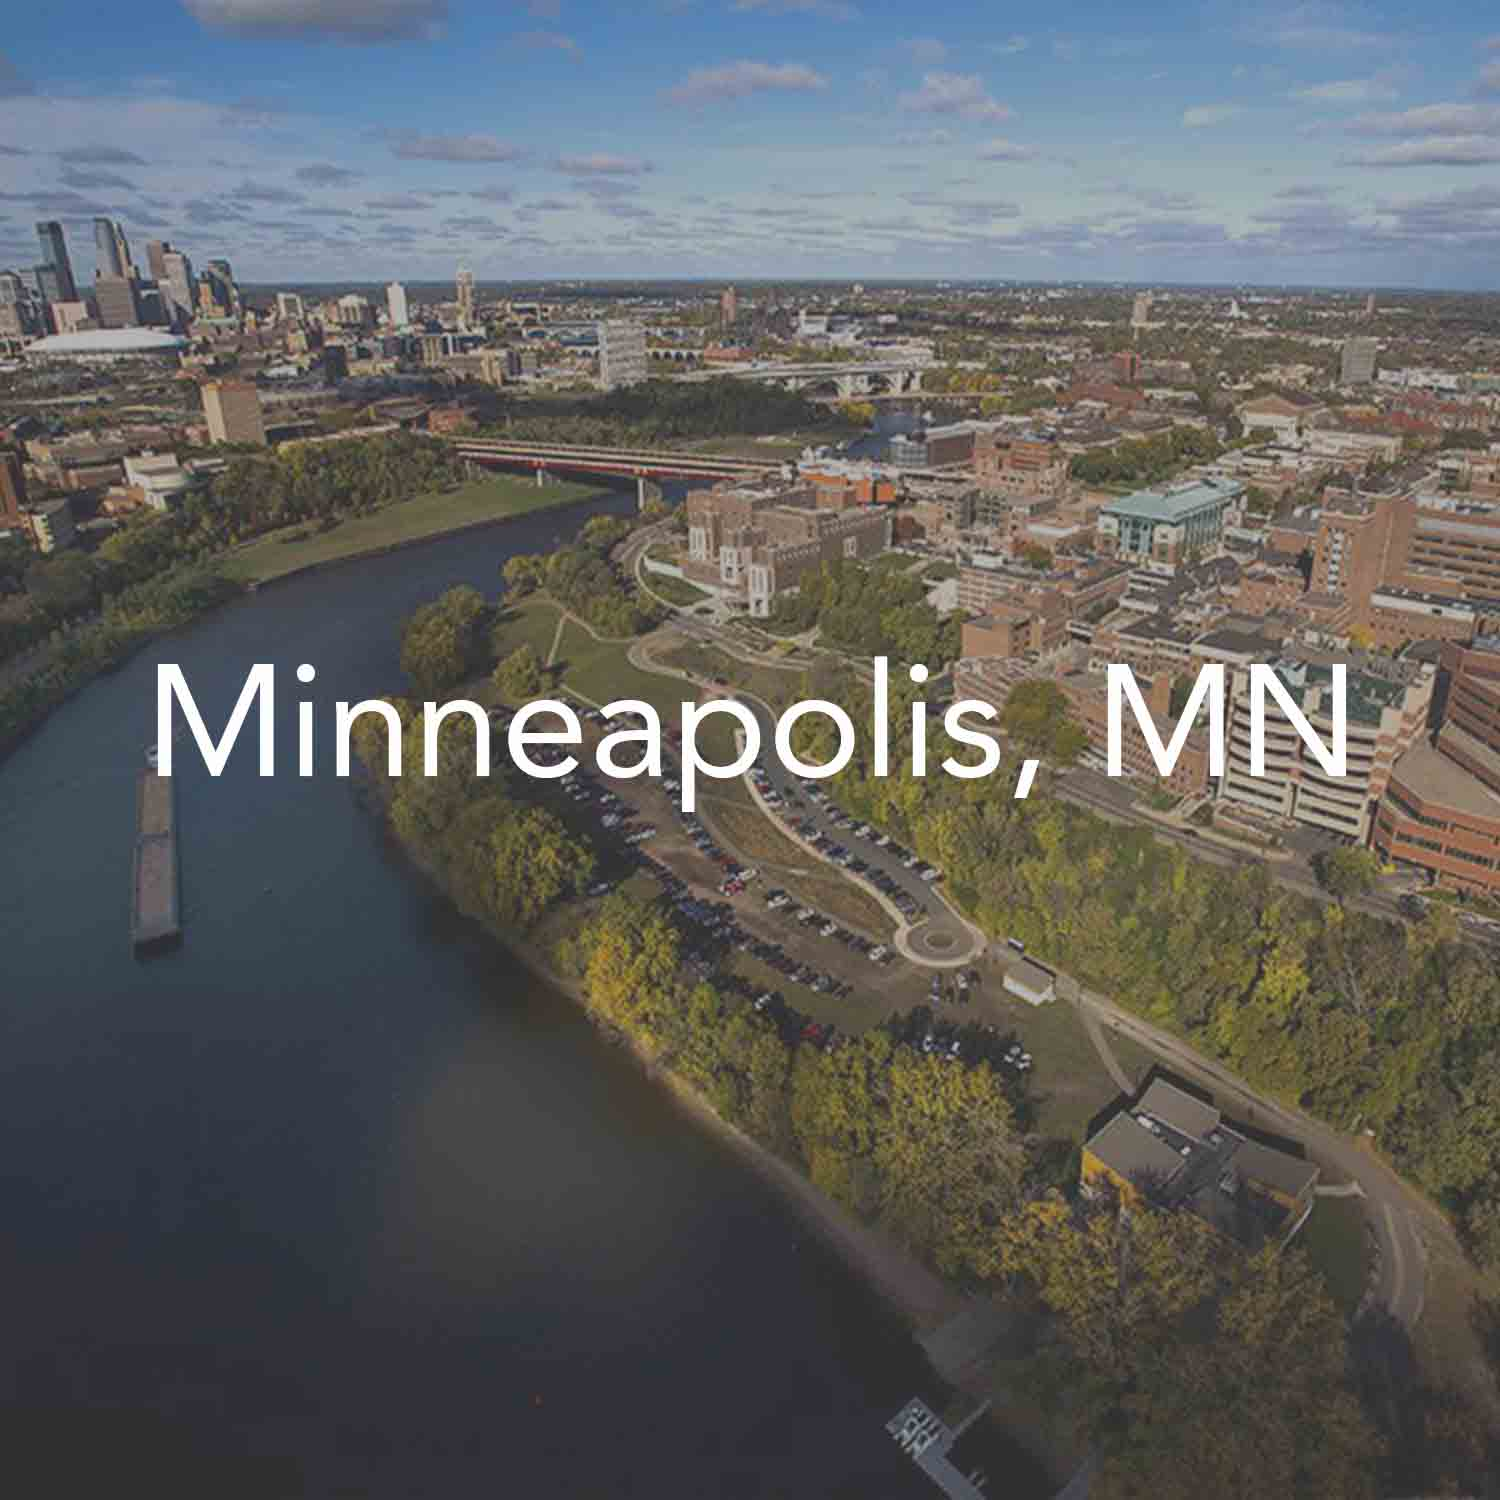 MinneapolisWebsite.jpg